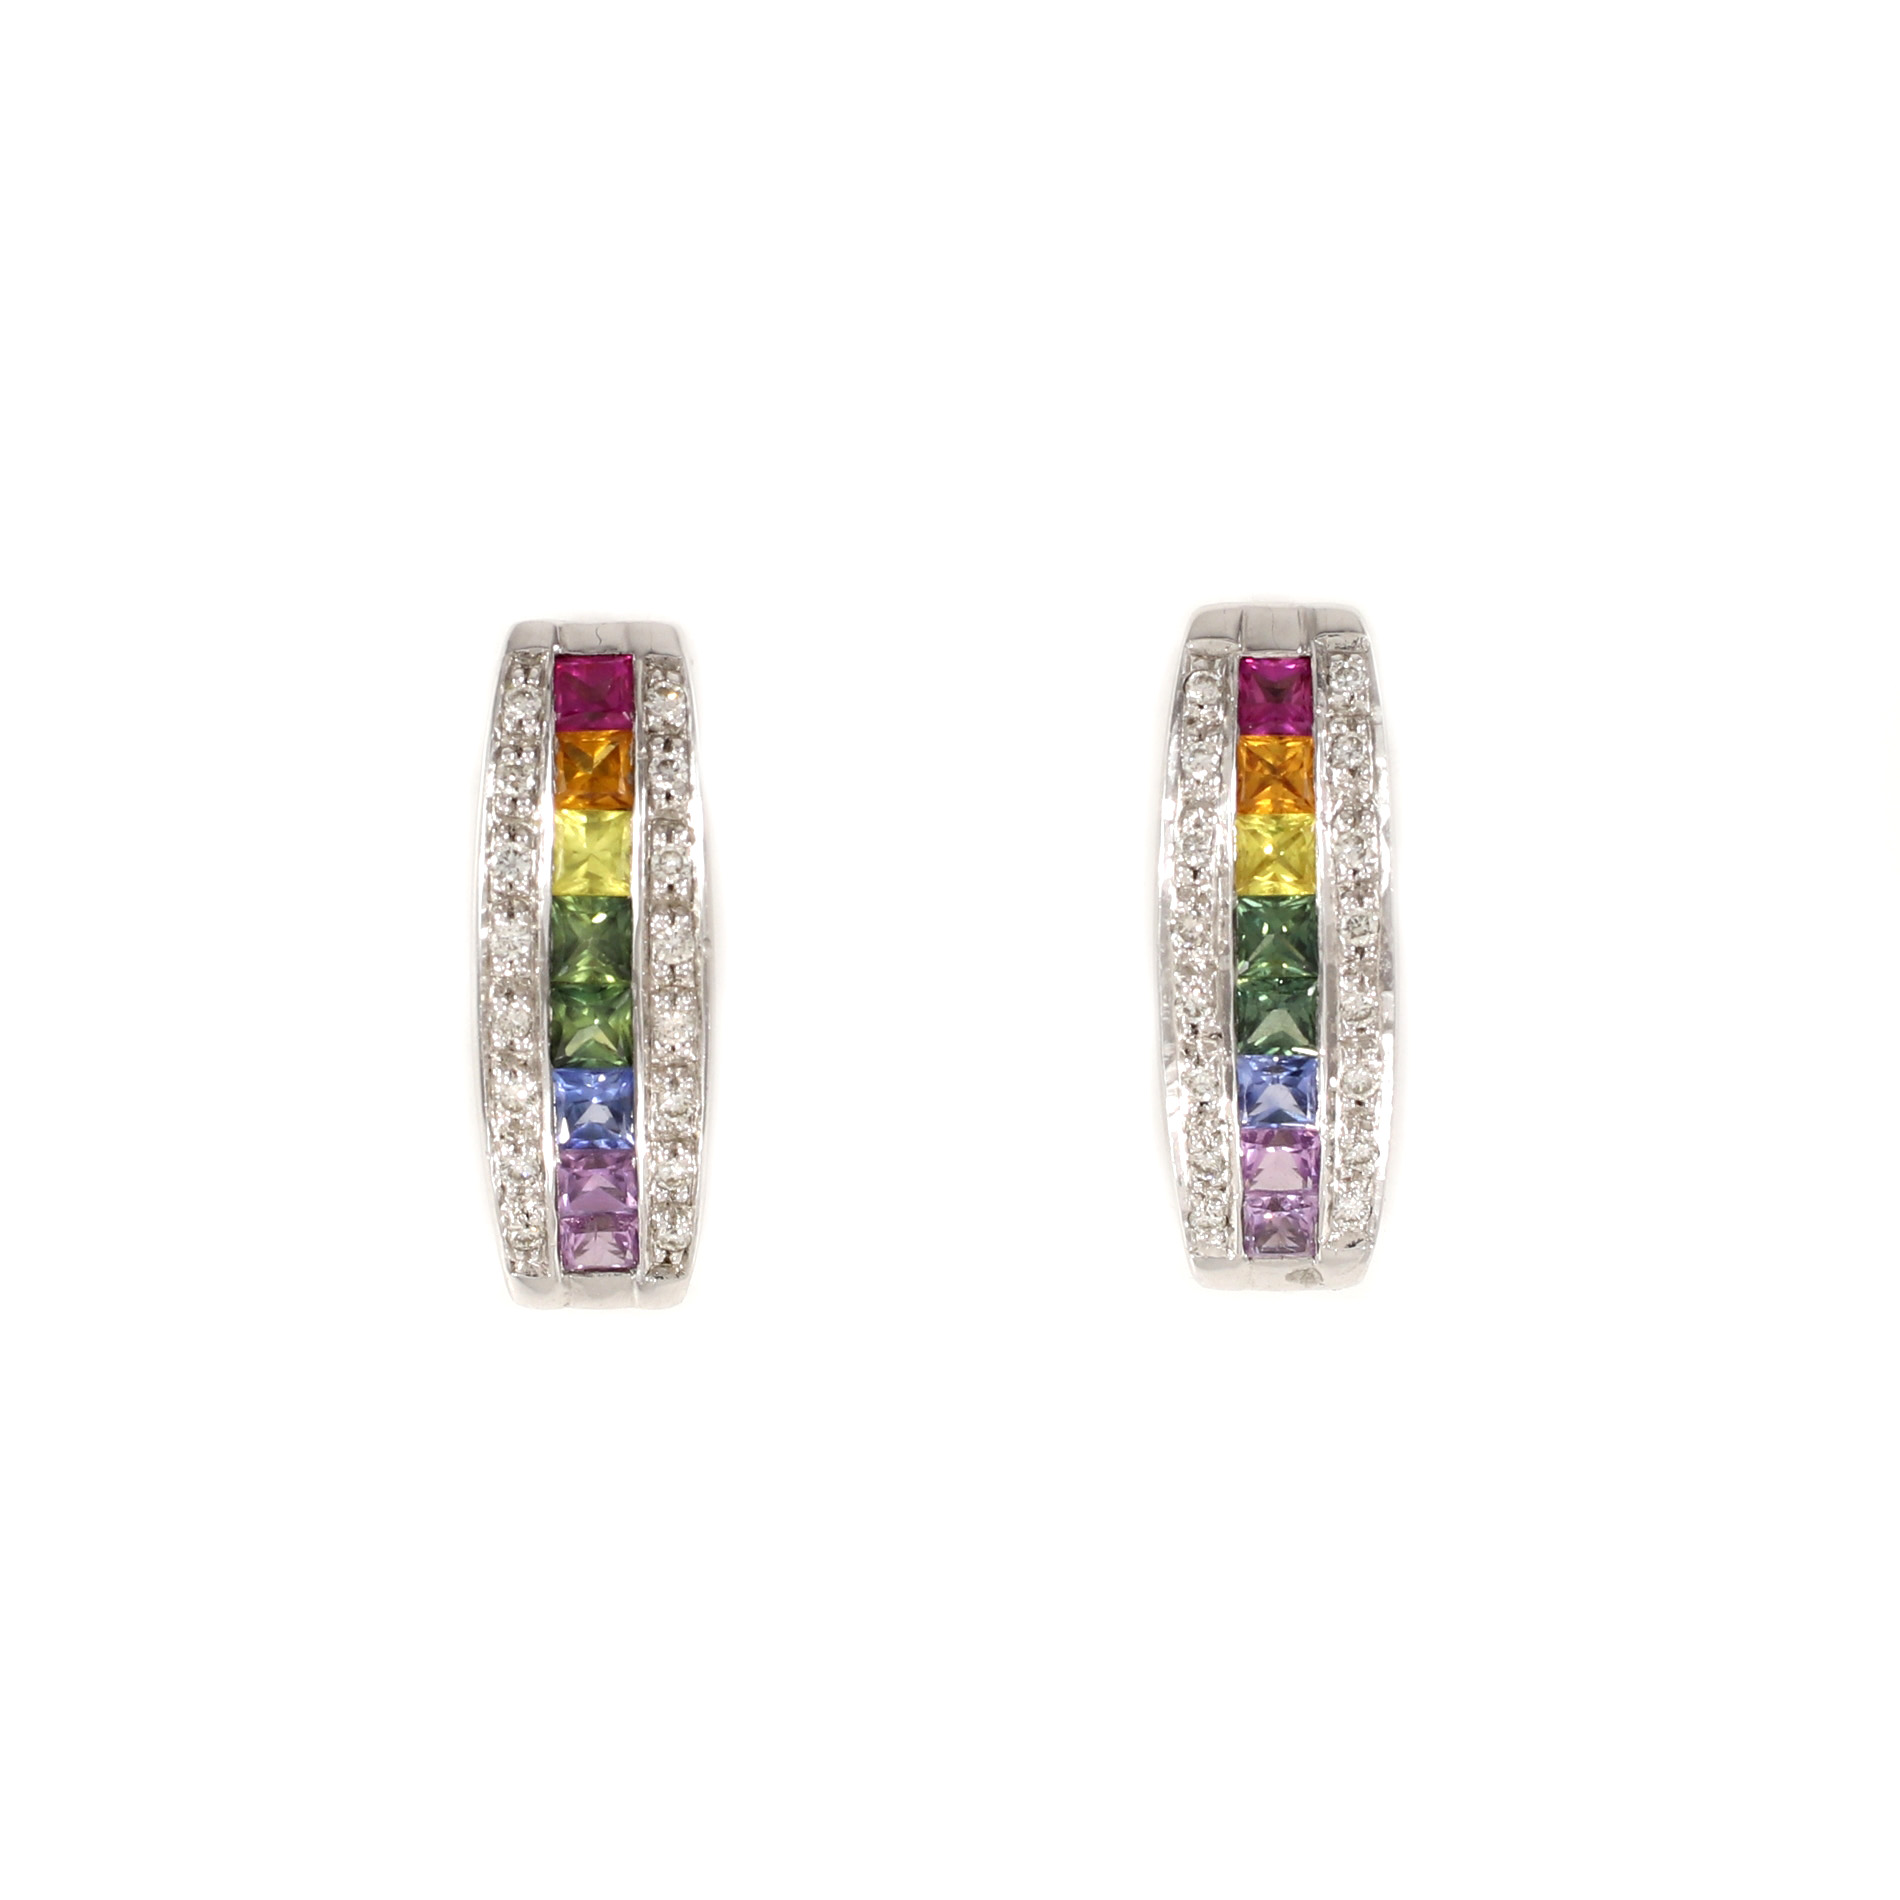 Rainbow Sapphire Earrings